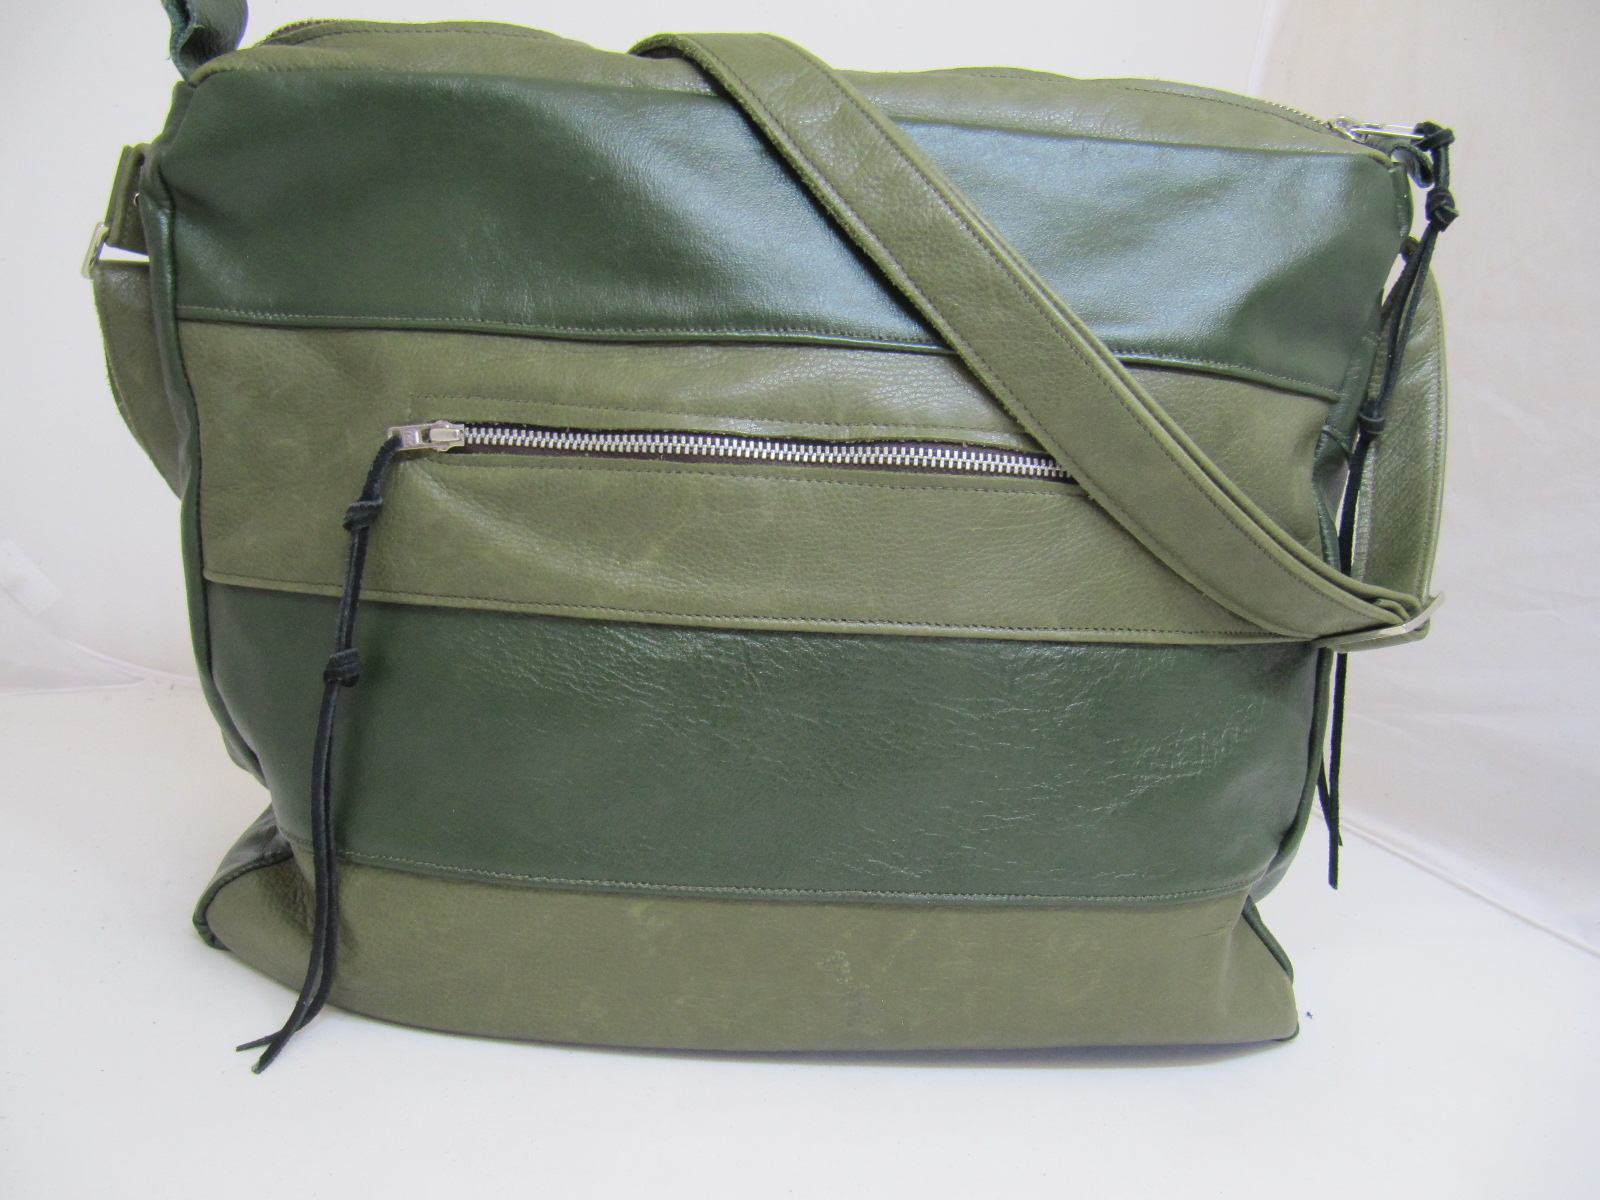 Two tone soft green leather panel handbag